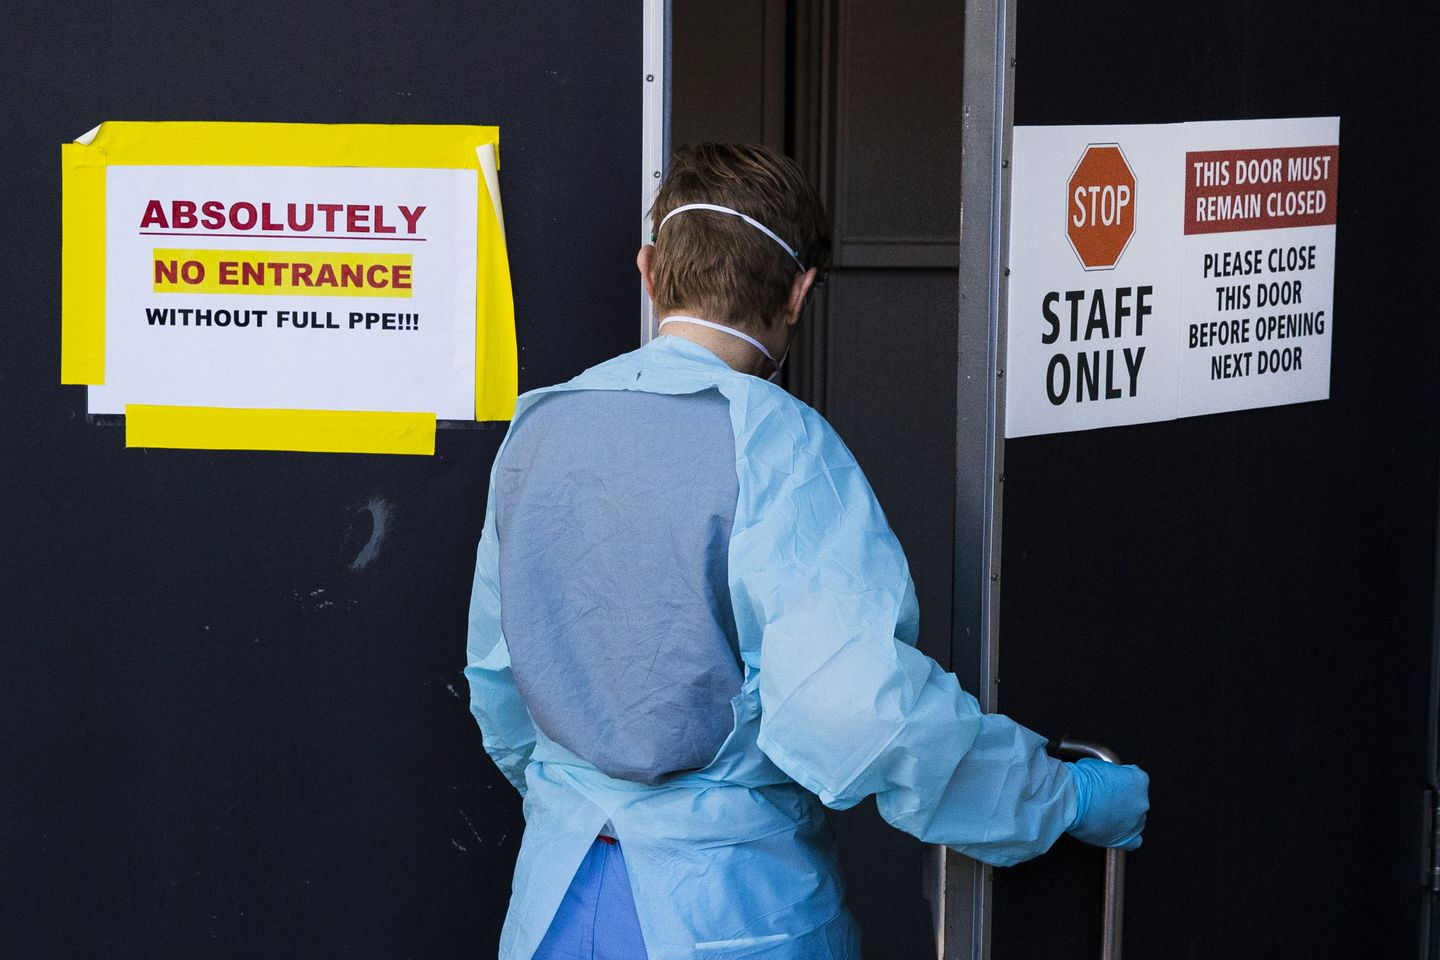 People who need care are not going to hospitals because of coronavirus, doctors say